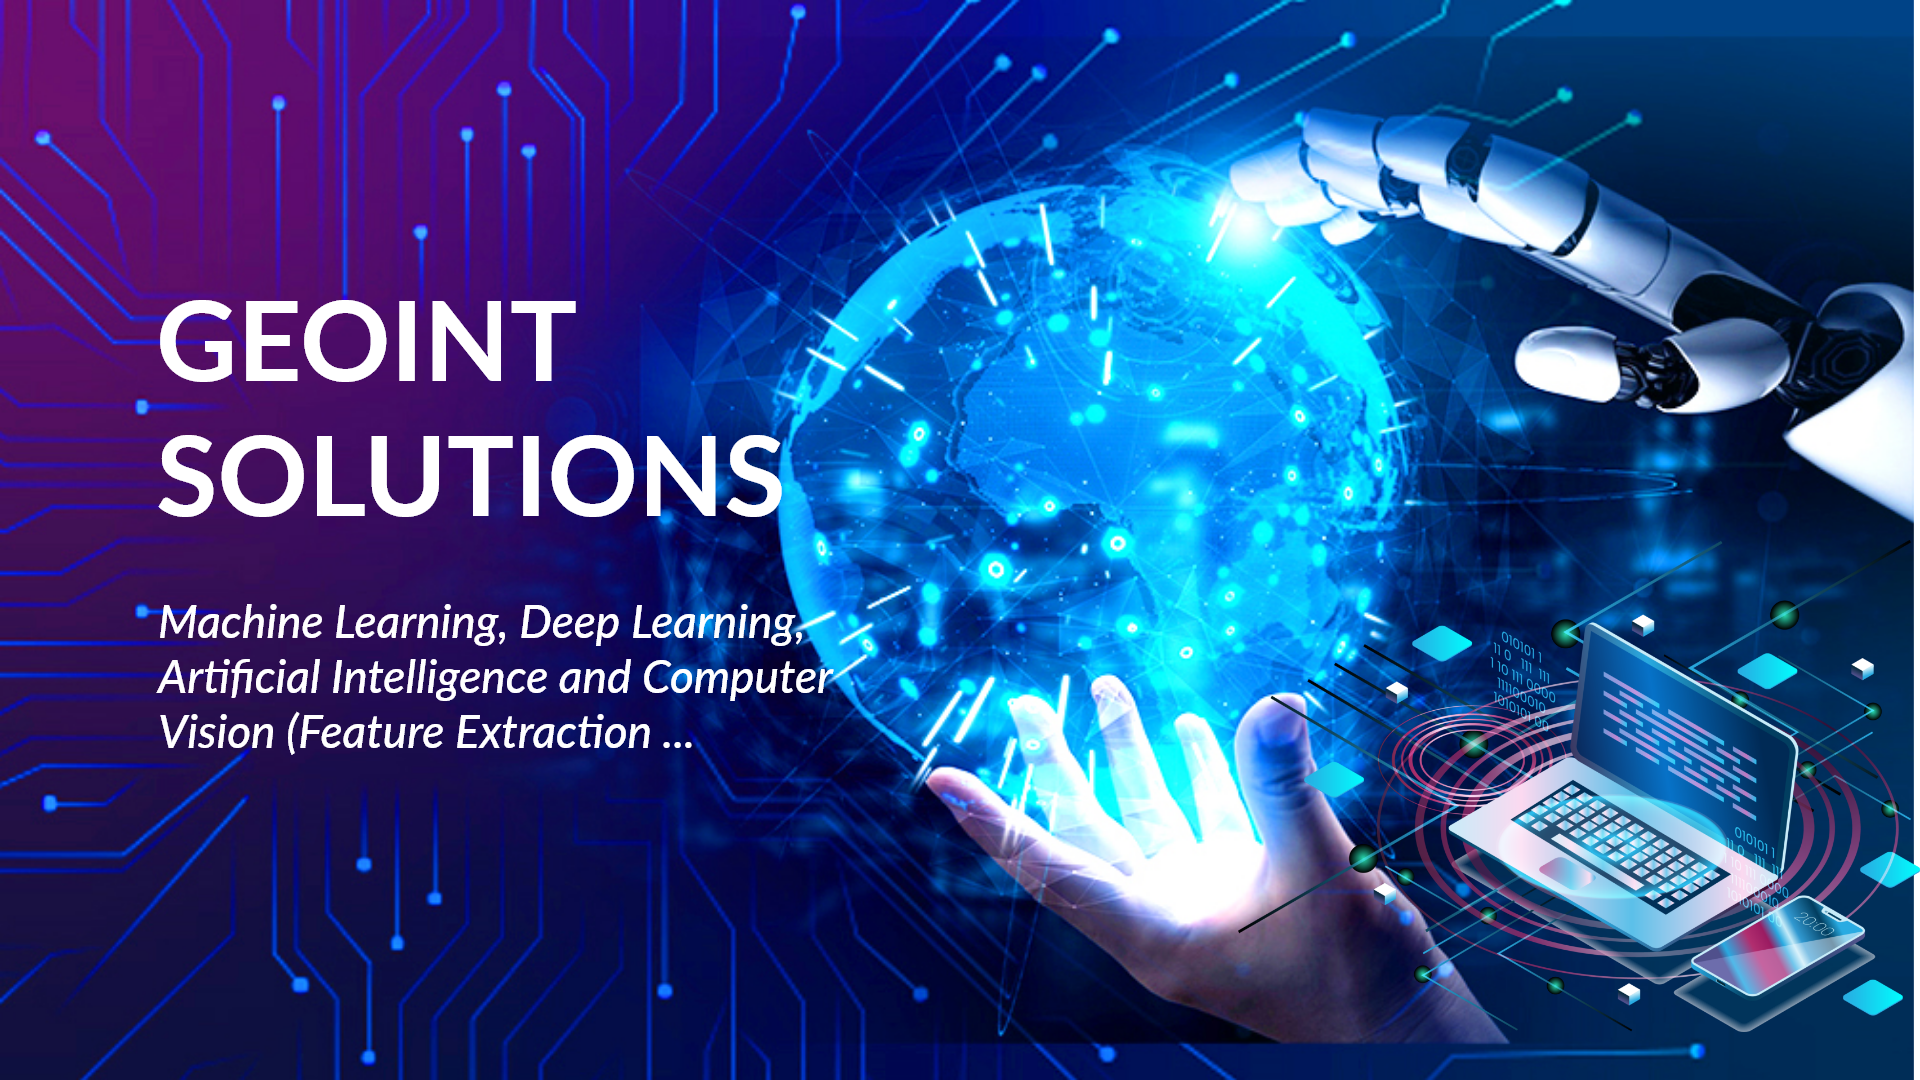 GEOINT Solutions